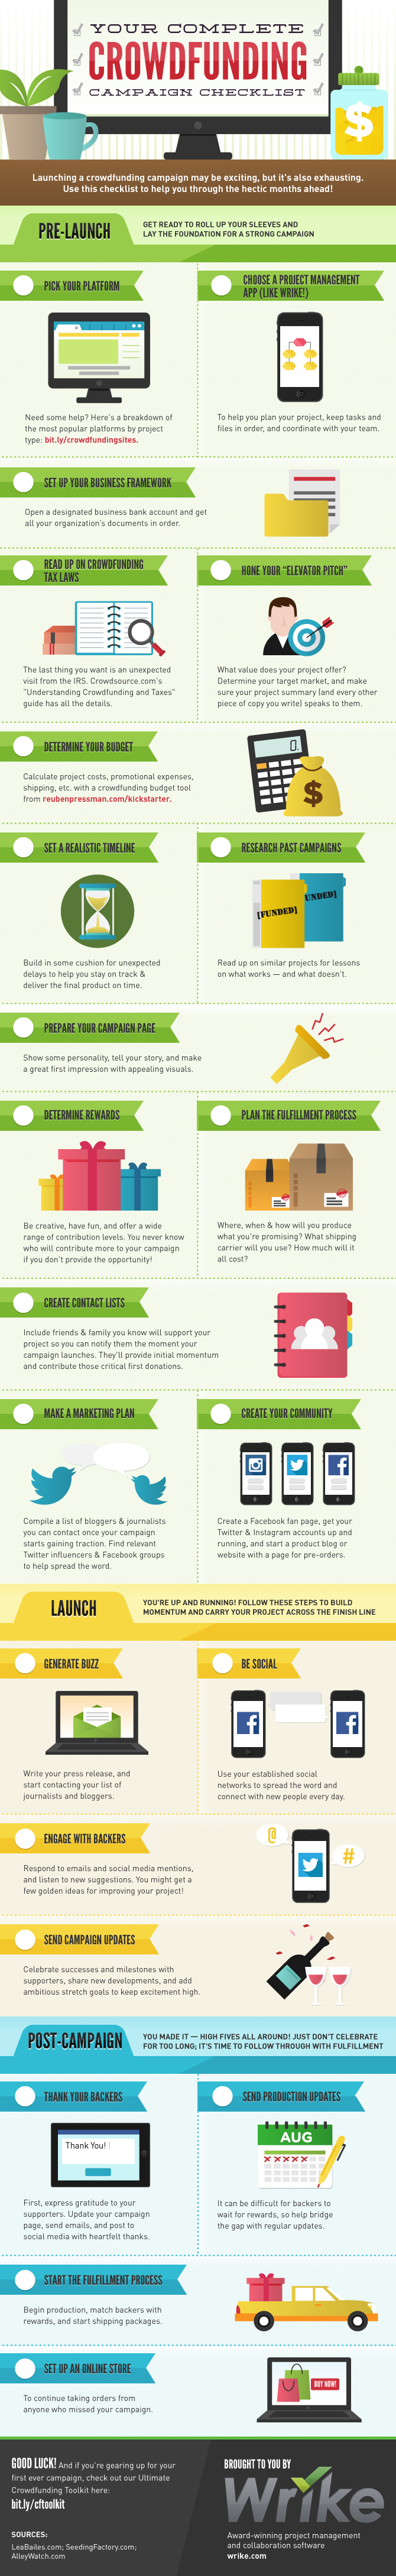 The Ultimate Crowdfunding Campaign Checklist #infographic